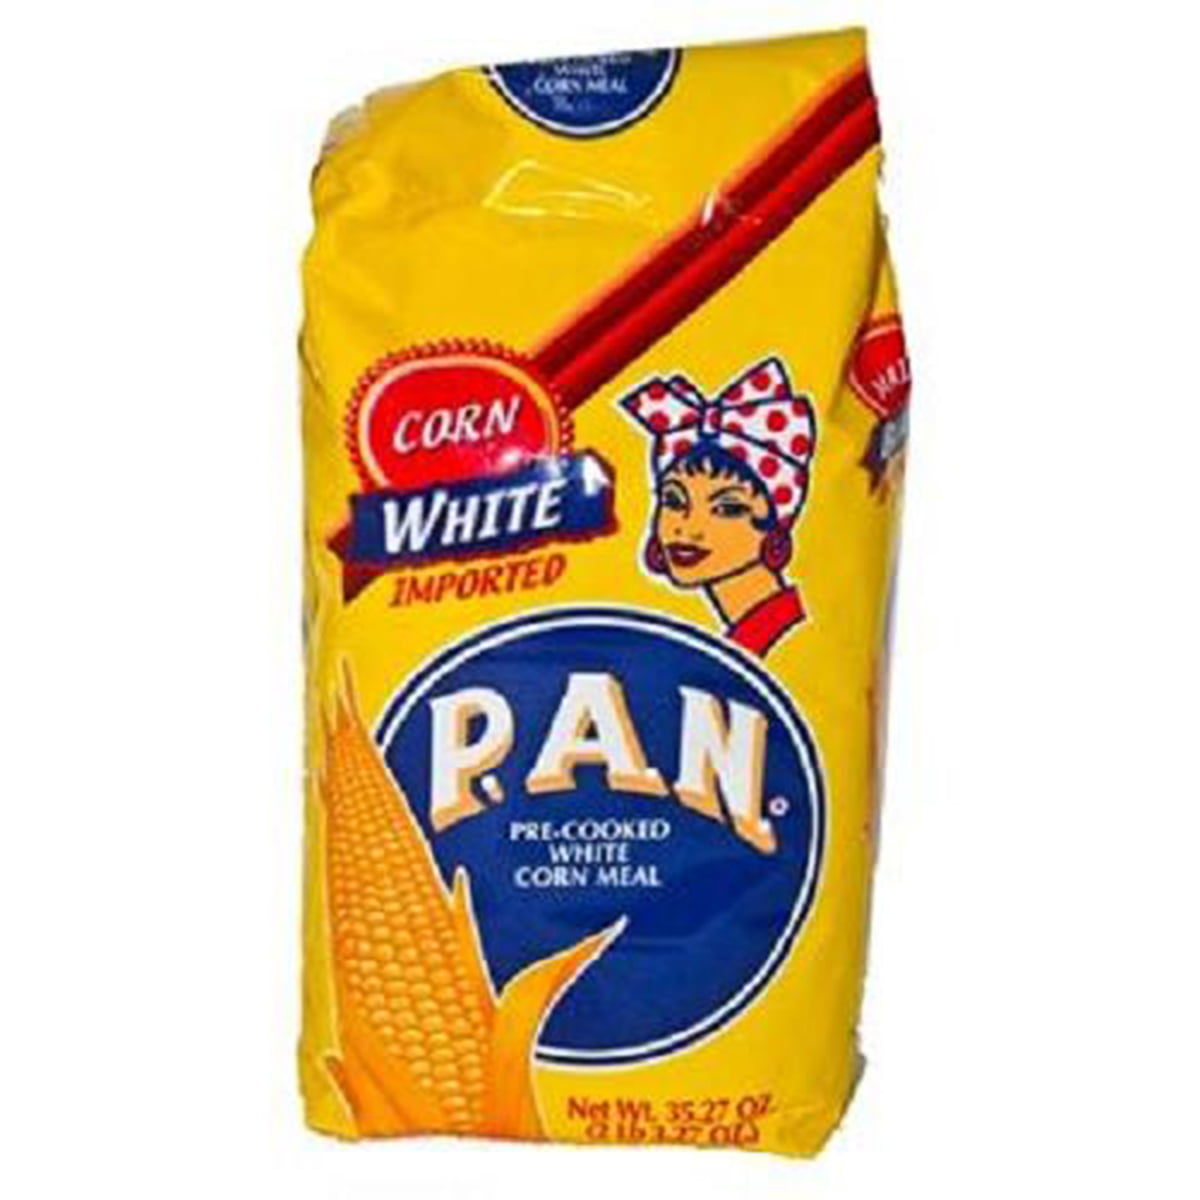 Product Of Pan, Pre-Cooked White Corn Flour, Count 1